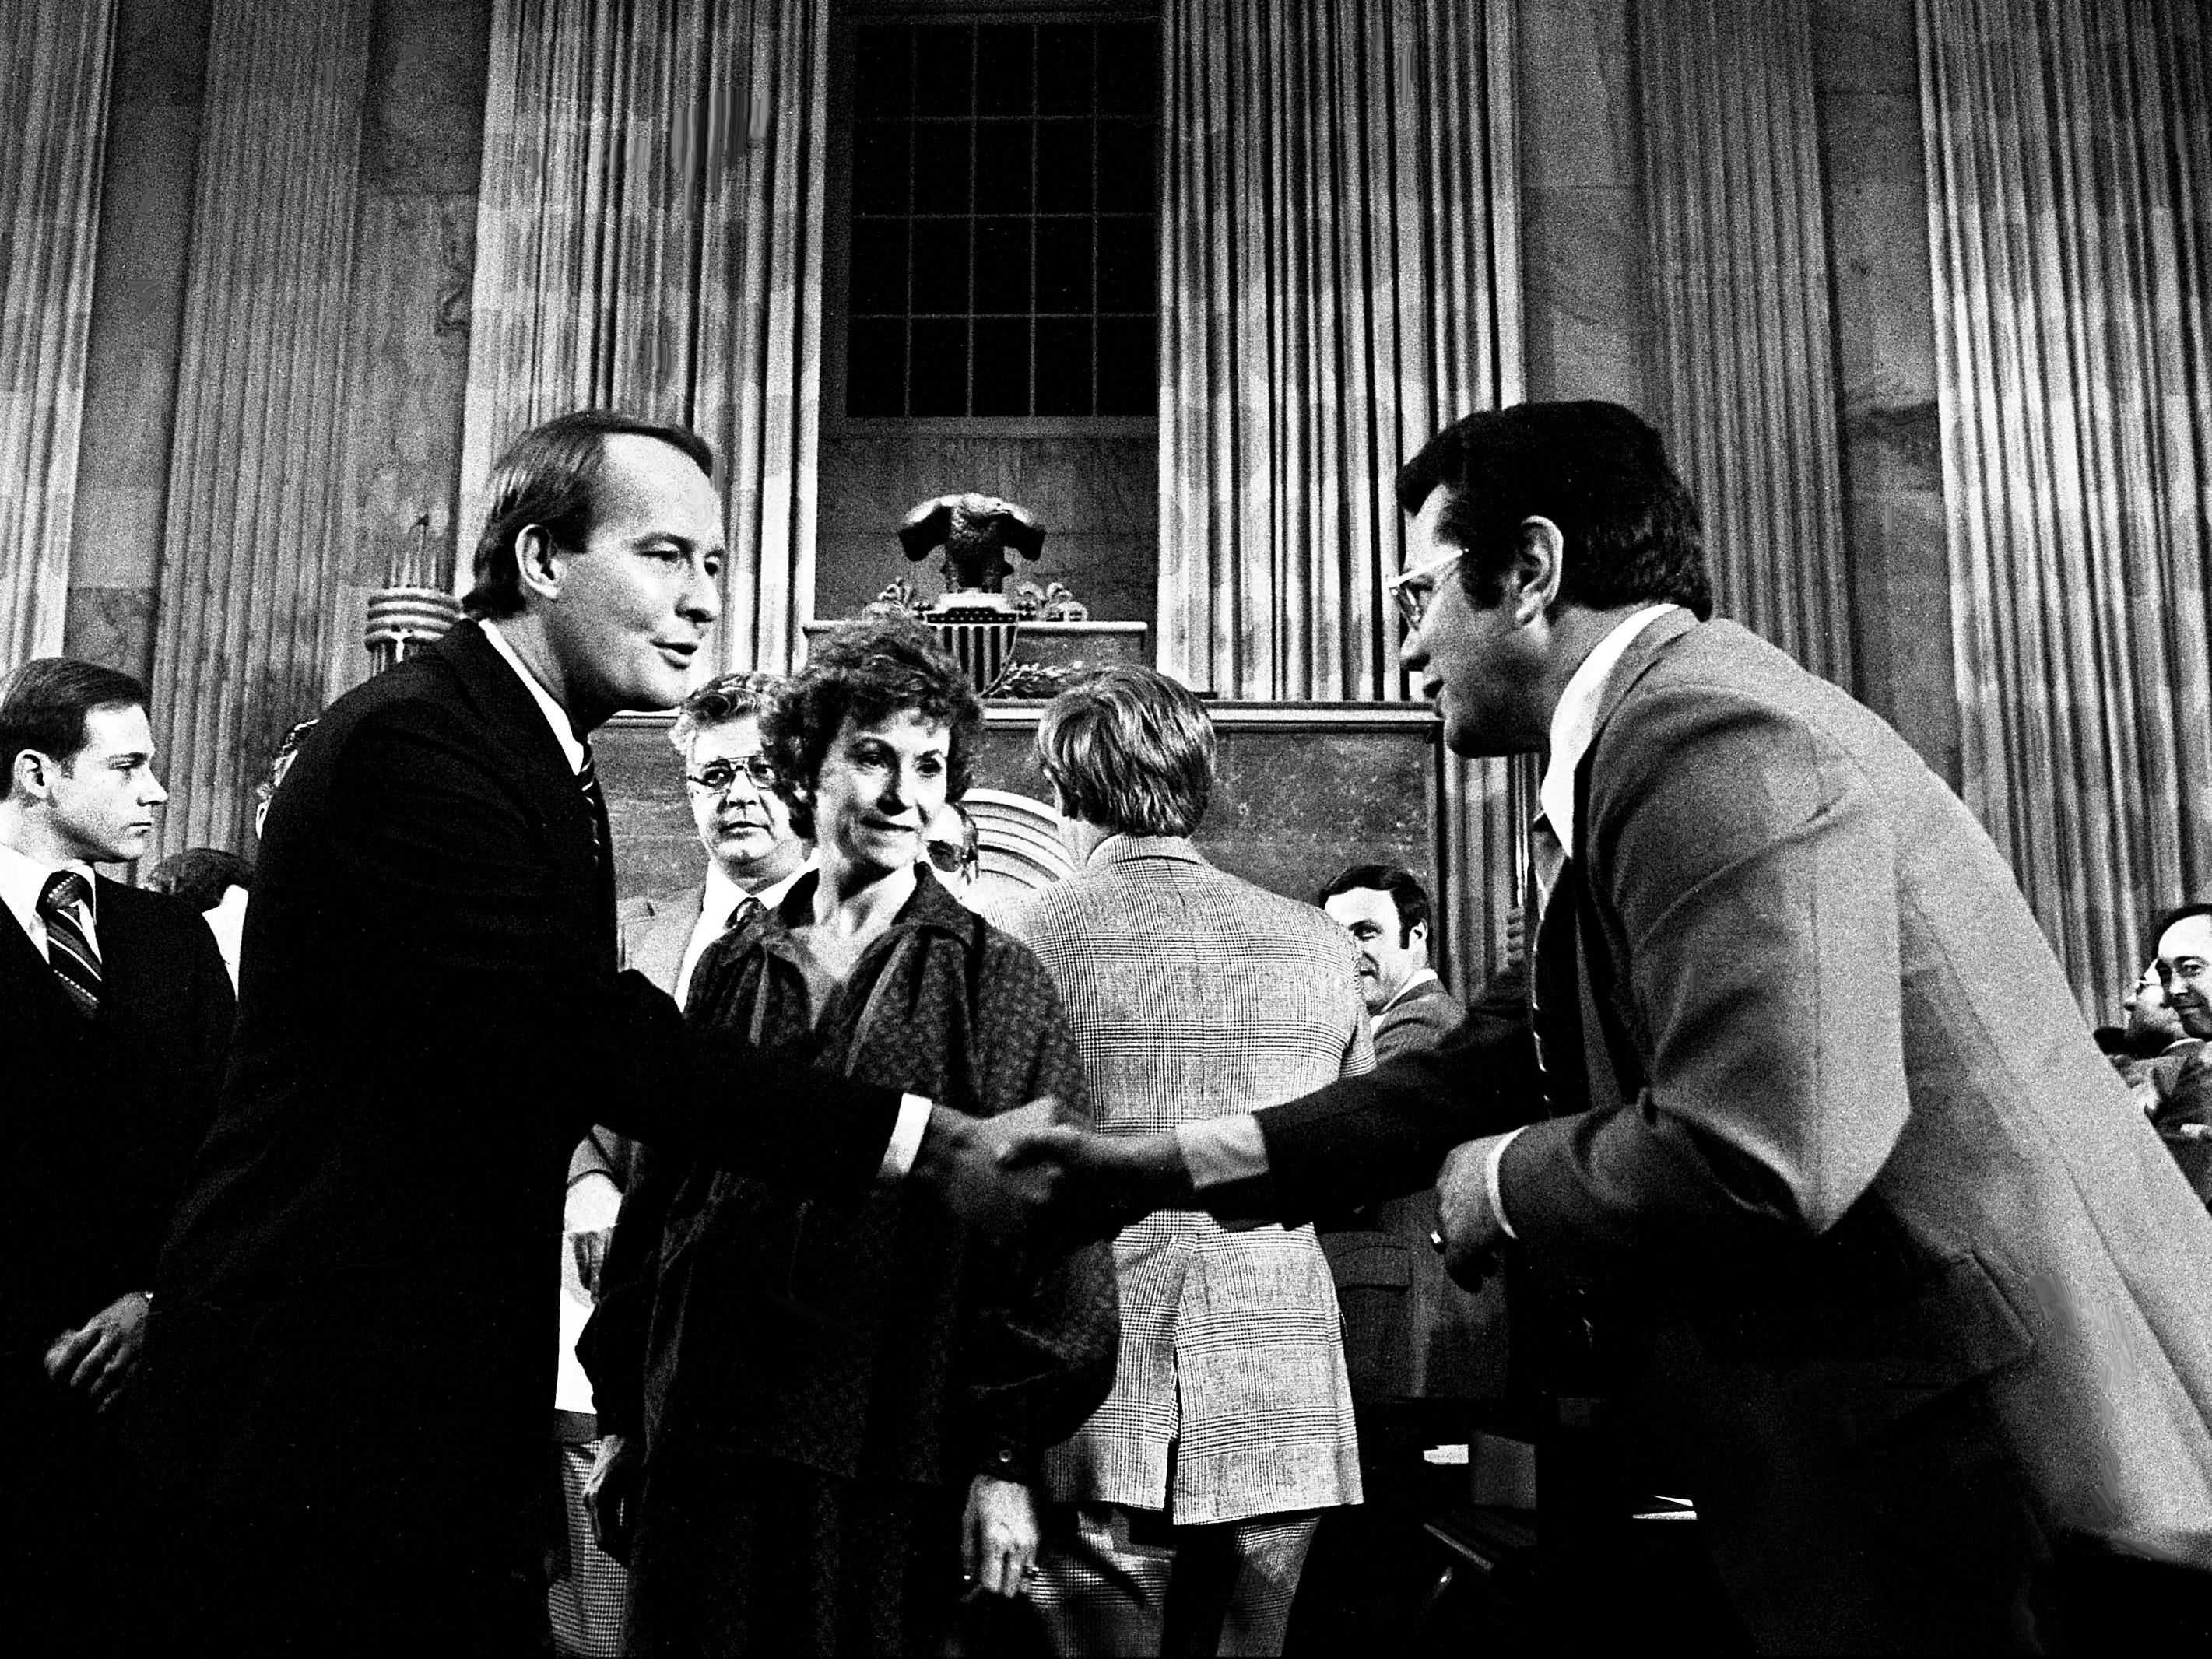 Gov. Lamar Alexander, left, with wife Honey, shakes hands with a legislator as he leaves the House chamber after his budget address to the joint legislature at the state Capitol on Feb. 28, 1979.